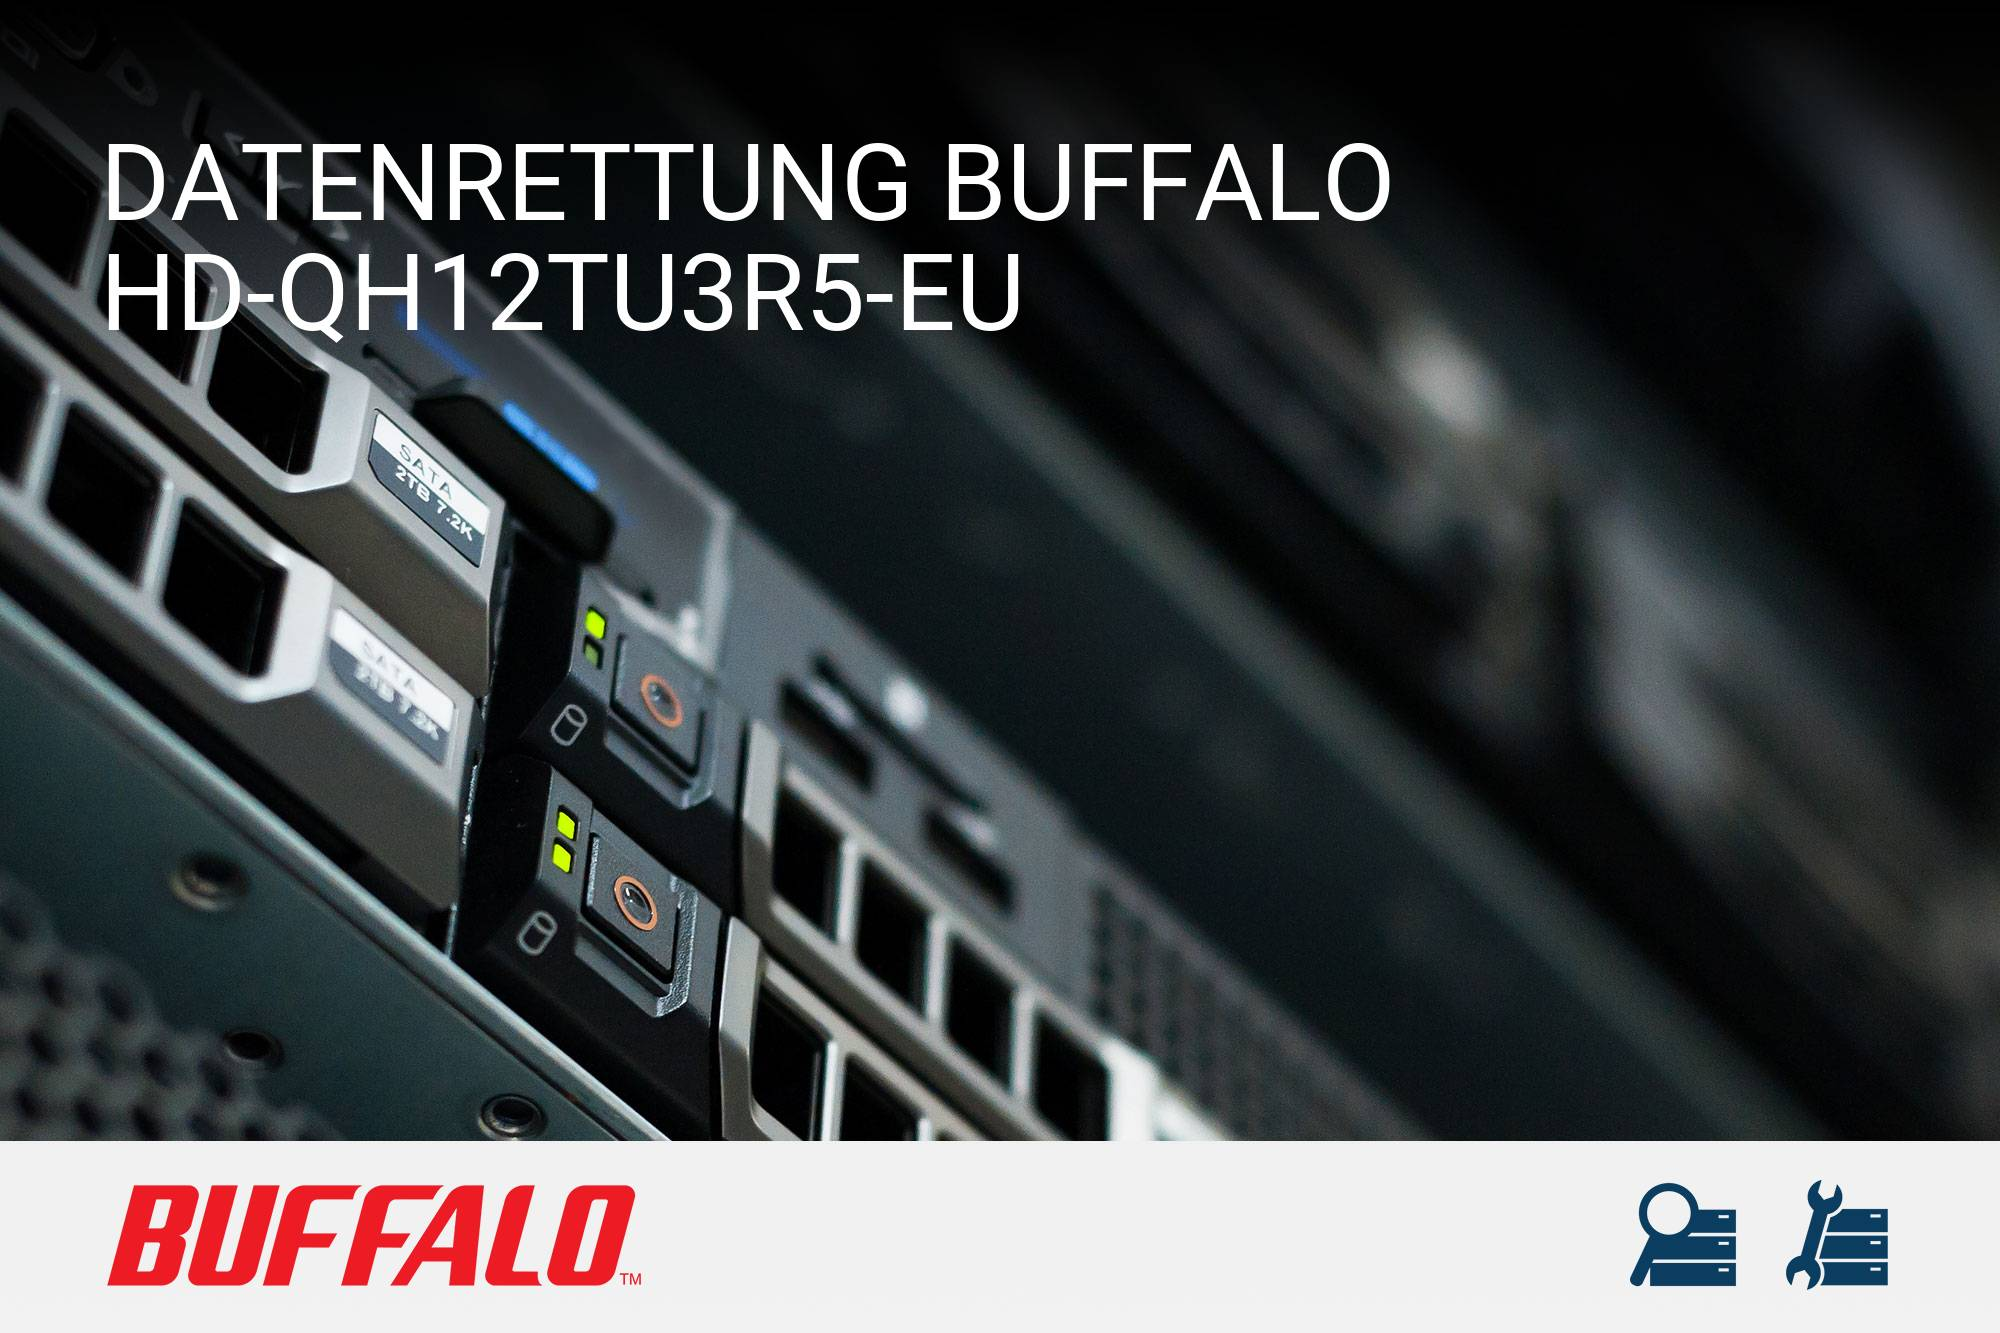 Buffalo HD-QH12TU3R5-EU